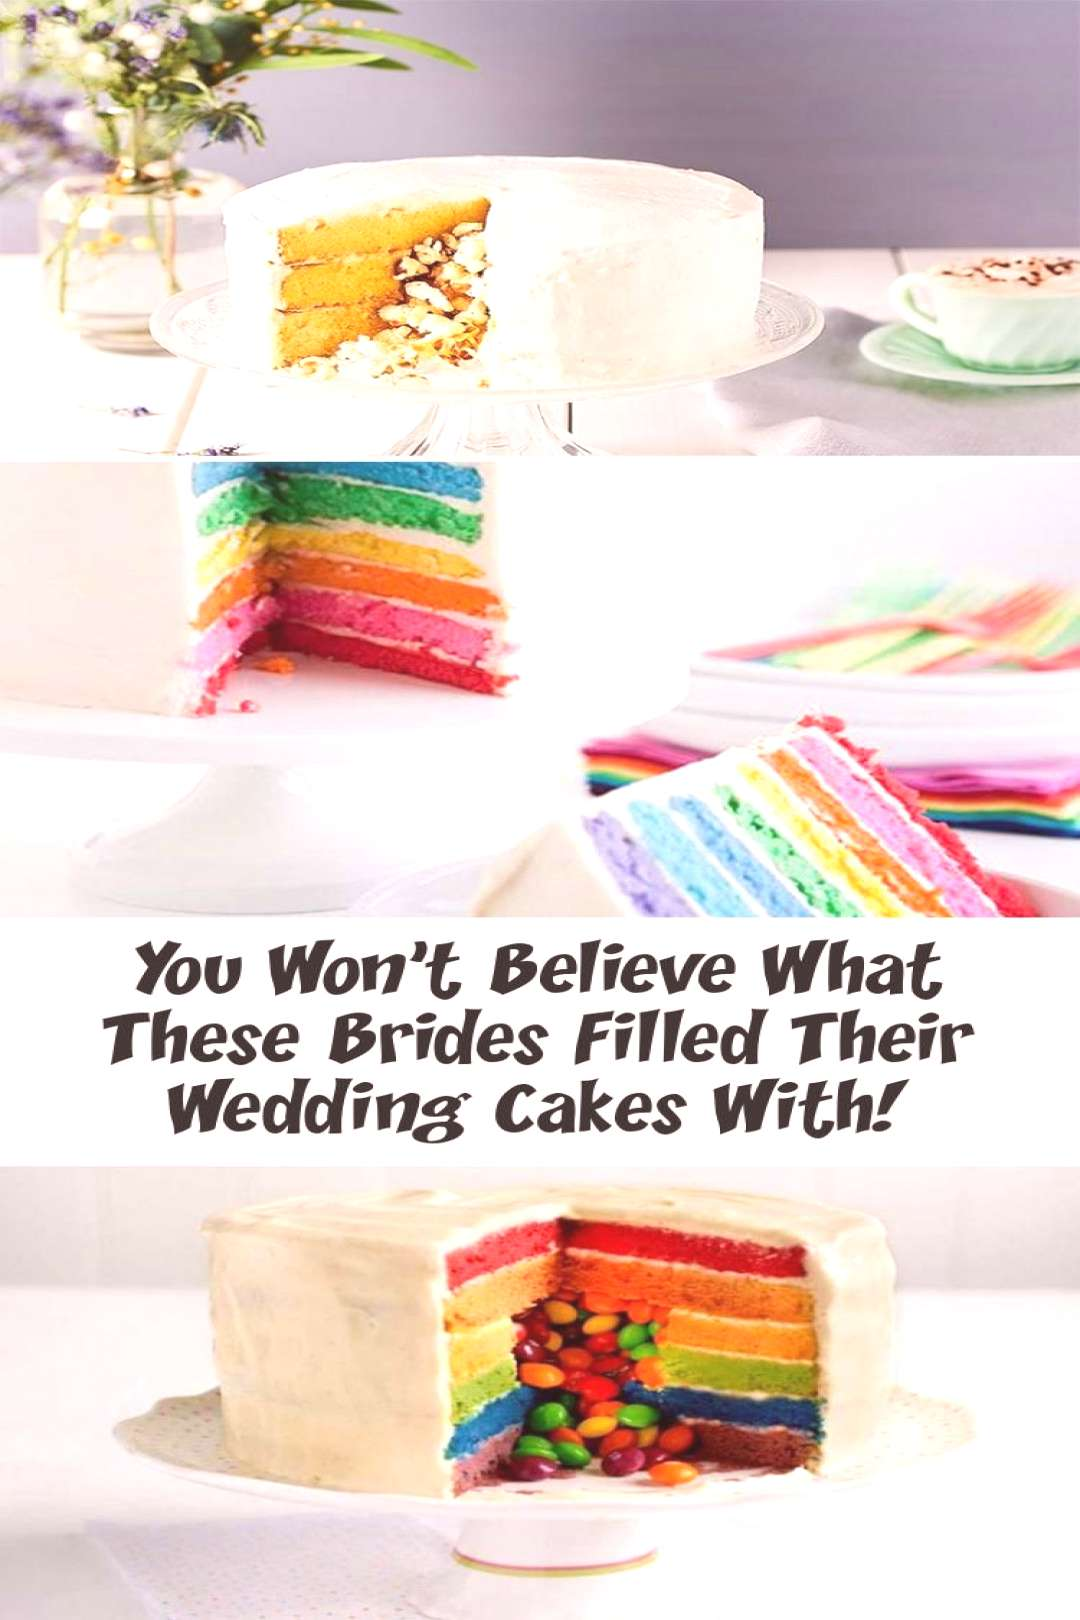 You Won't Believe What These Brides Filled Their Wedding Cakes With! - Decorations , You Won't